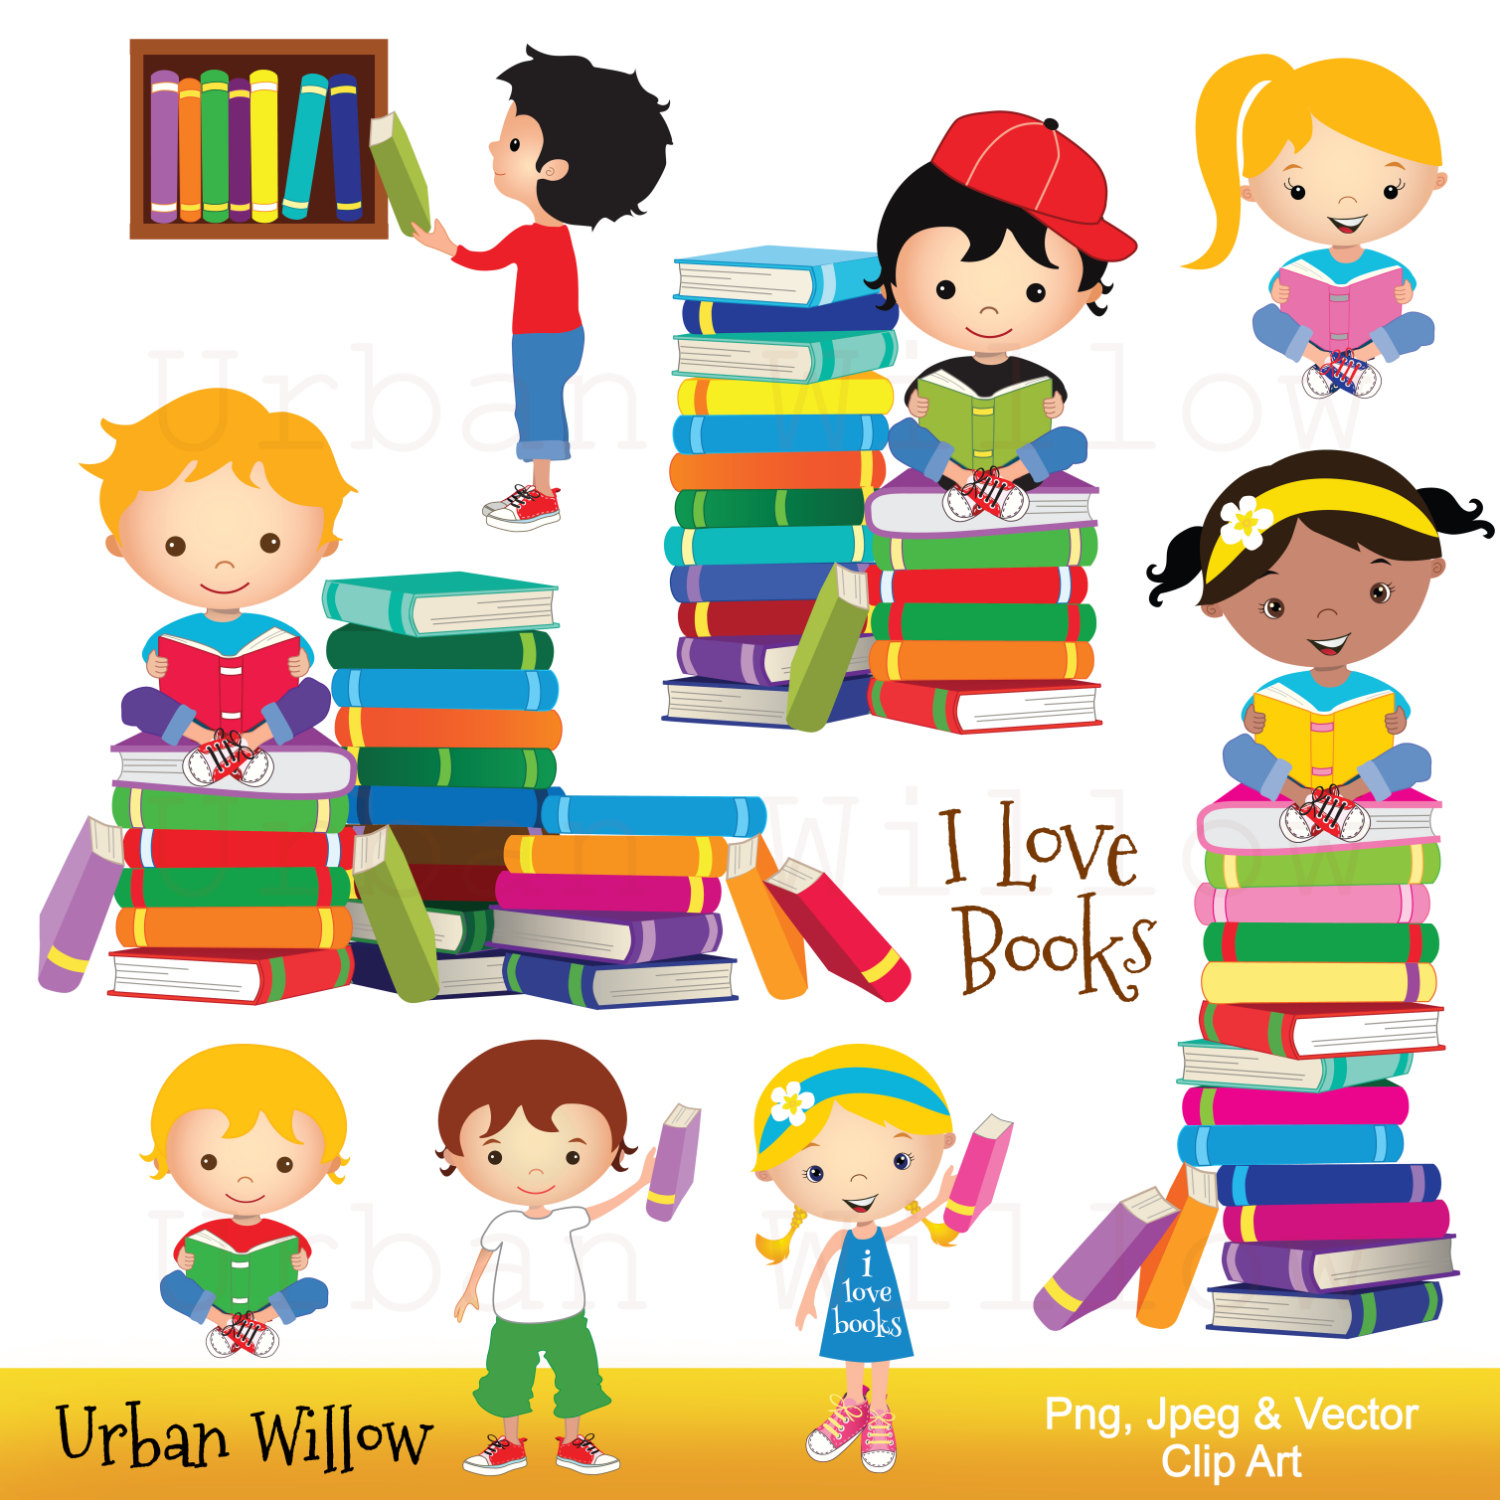 reading books clipart at getdrawings com free for personal use rh getdrawings com